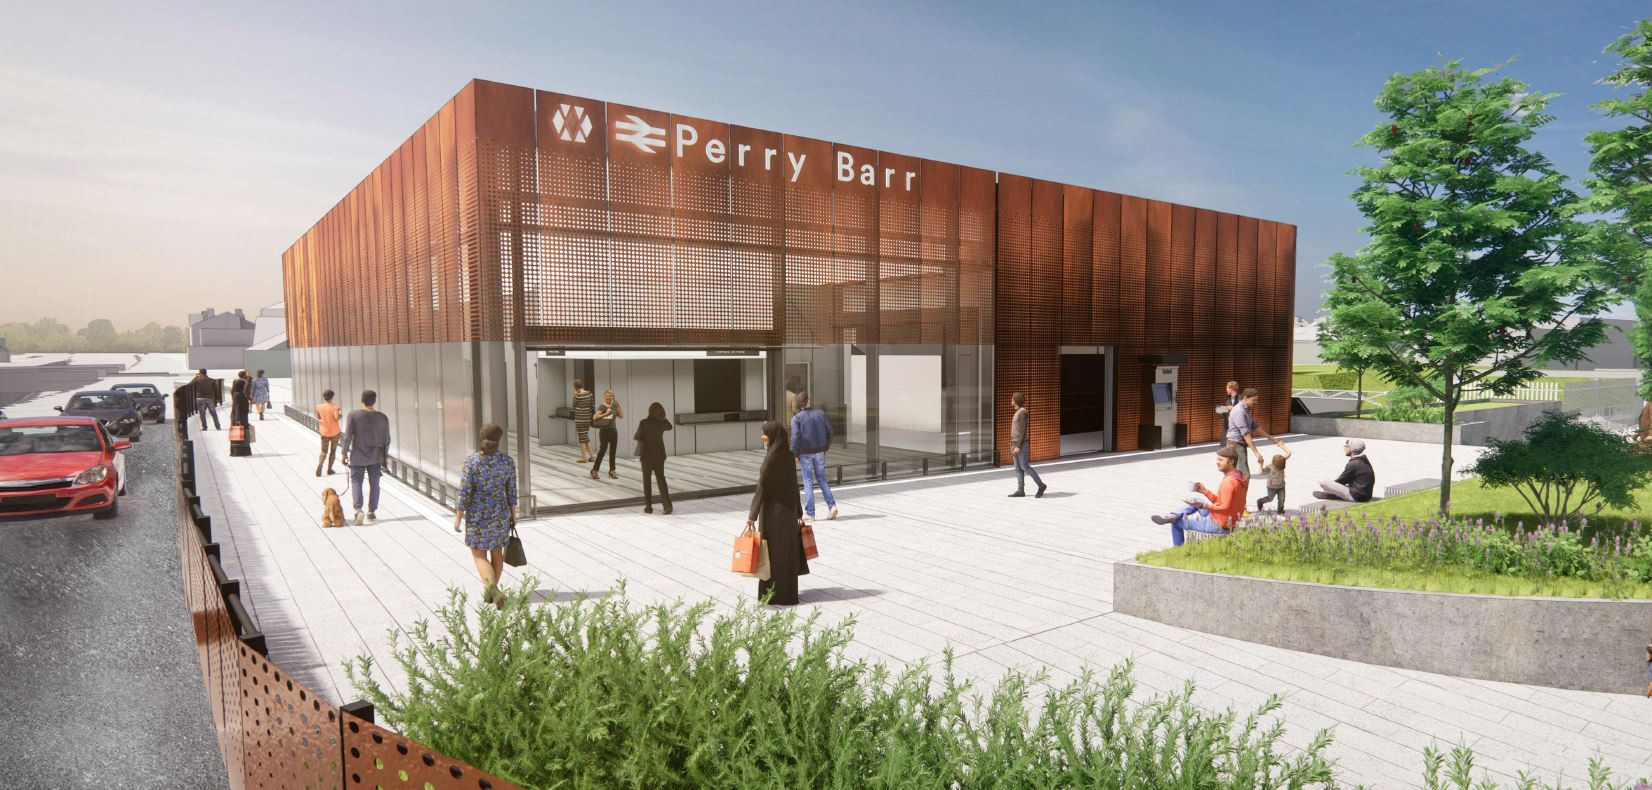 New Perry Barr railway station on track for Birmingham 2022 as West Midlands Deputy Mayor pays visit